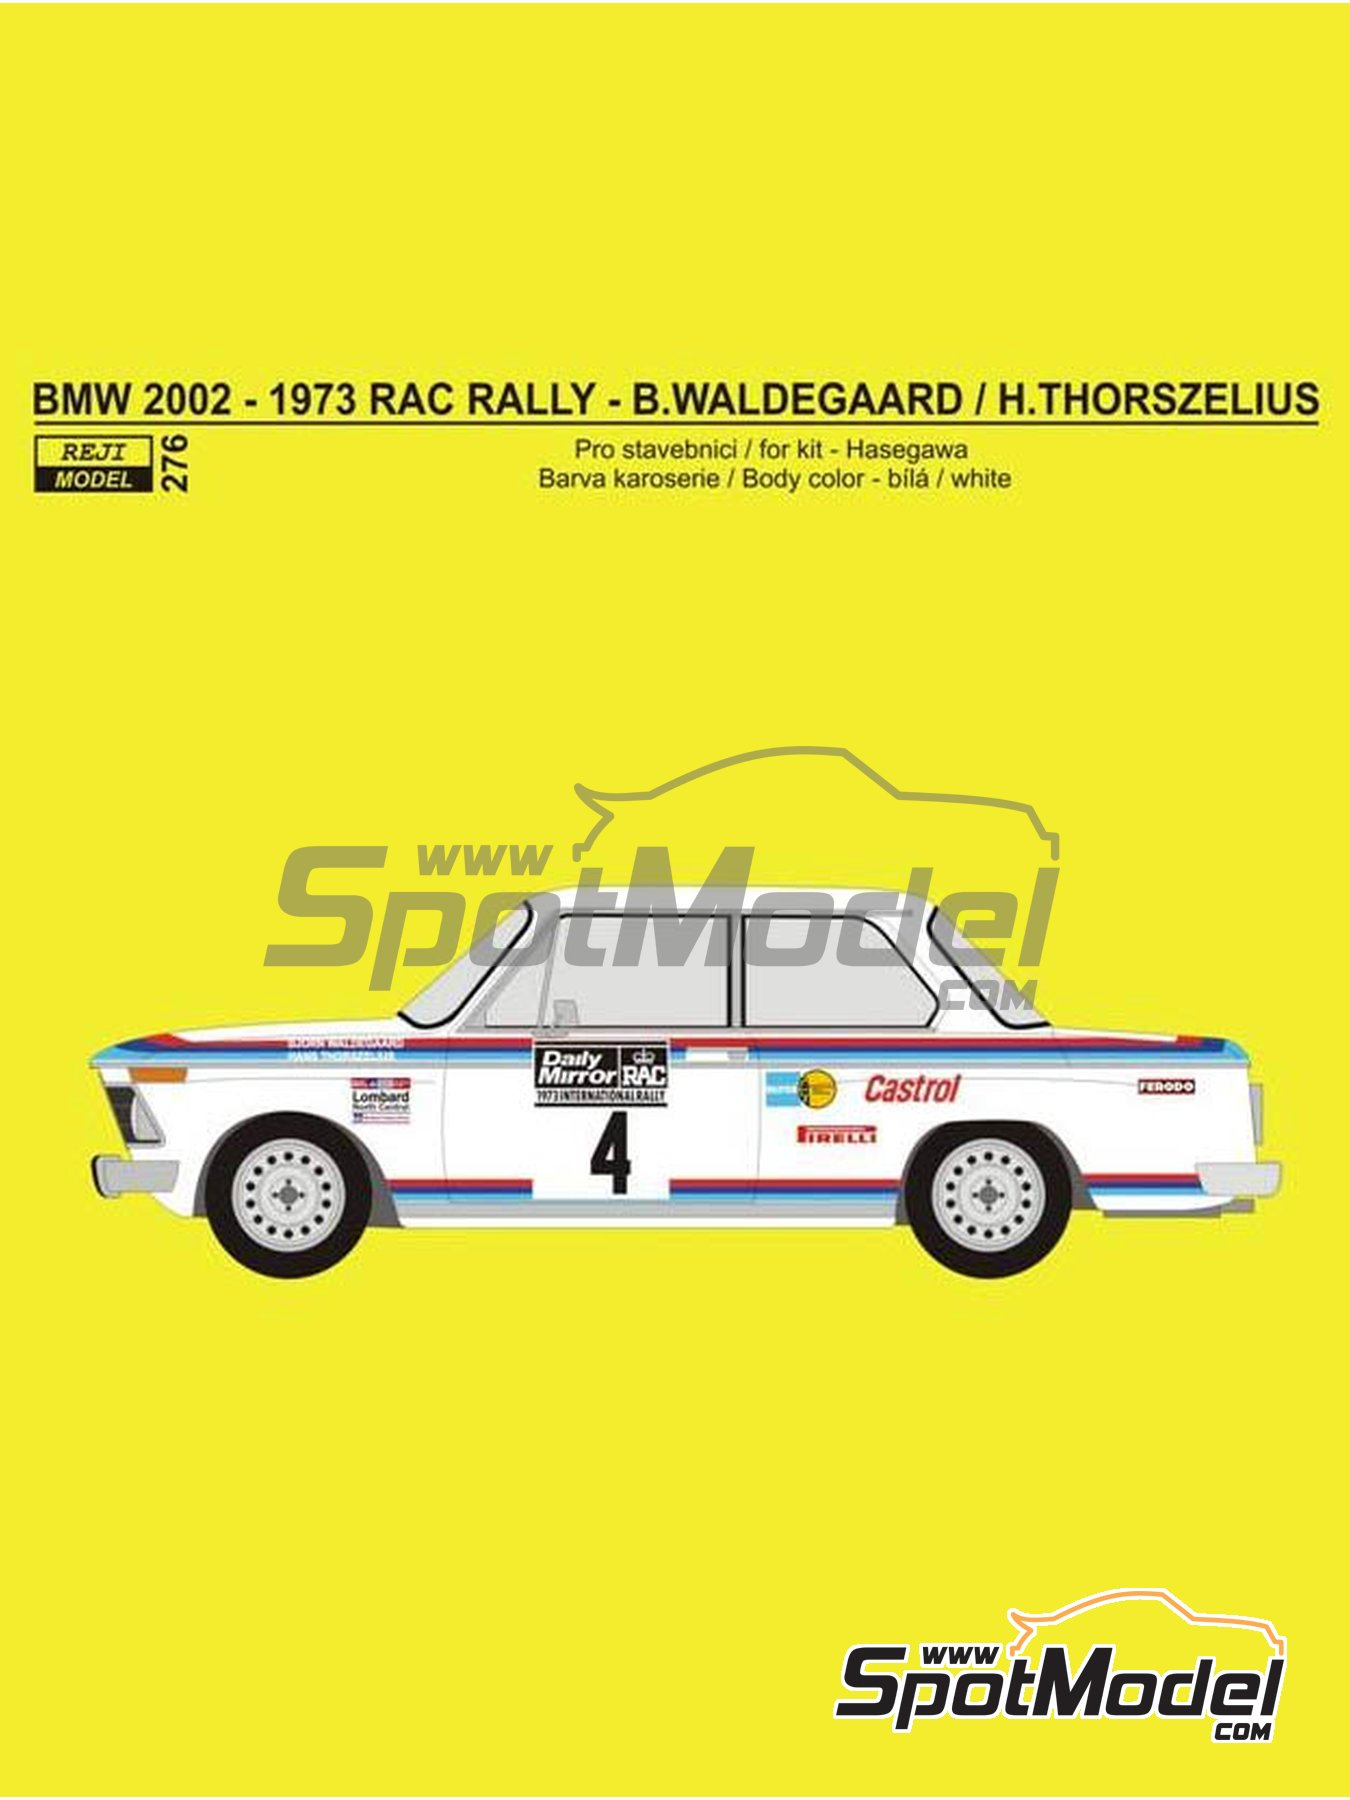 BMW 2002 tii Castrol - RAC Rally 1973 | Marking / livery in 1/24 scale manufactured by Reji Model (ref. REJI-276) image